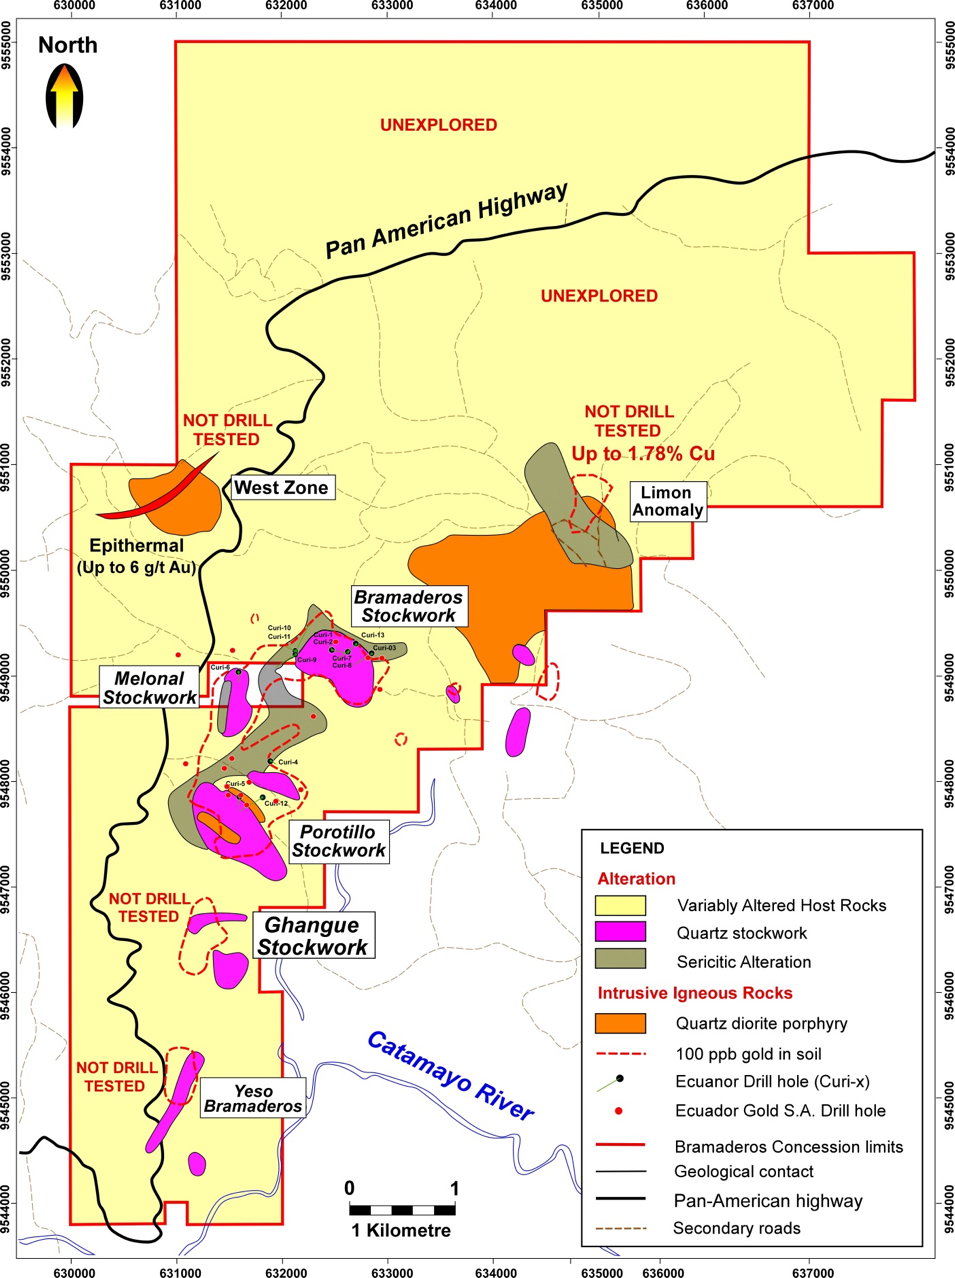 Mineral prospects and areas of quartz stockwork veining at Bramaderos (Ecuanor).